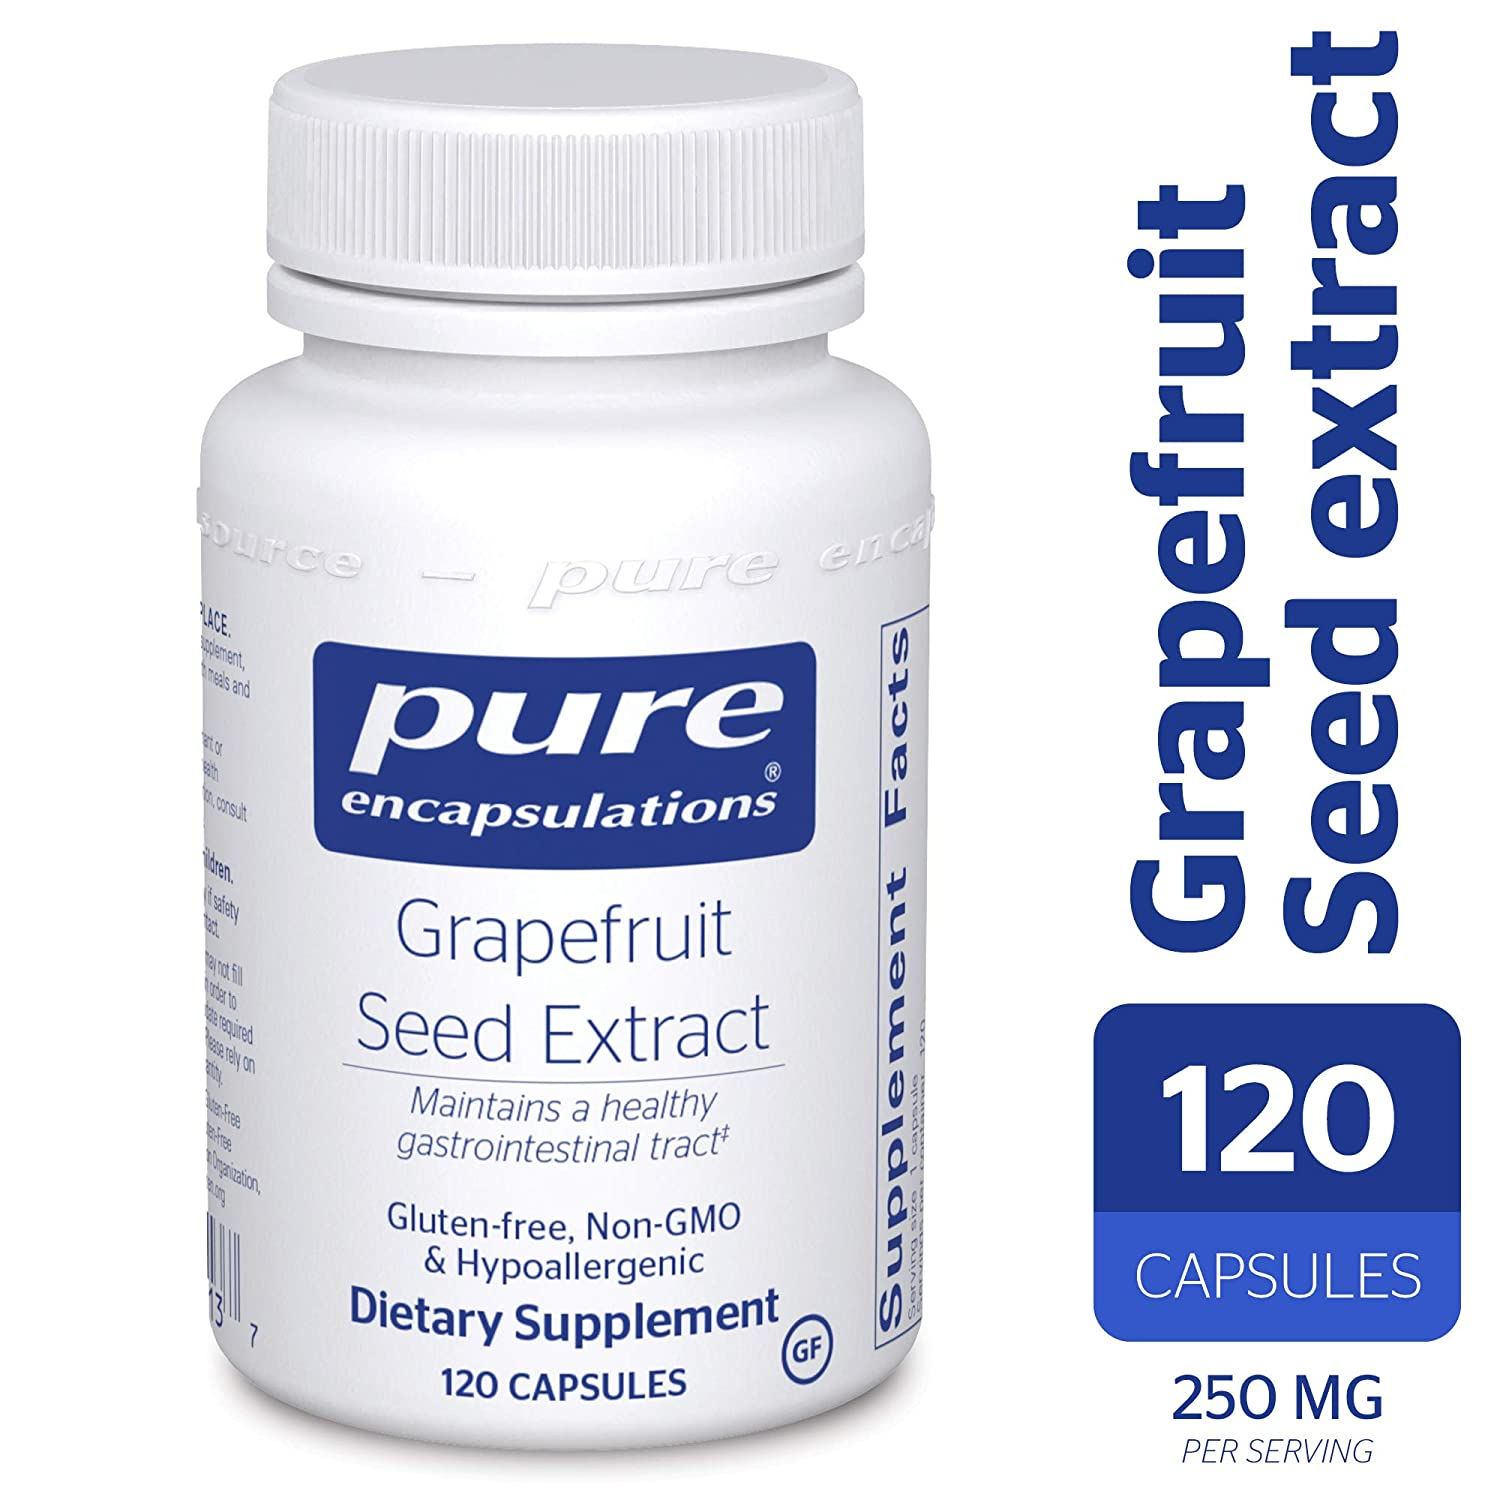 Pure Encapsulations – Grapefruit Seed Extract – Hypoallergenic Supplement Supports GI Tract and Balance of Intestinal Microorganisms* – 120 Capsules